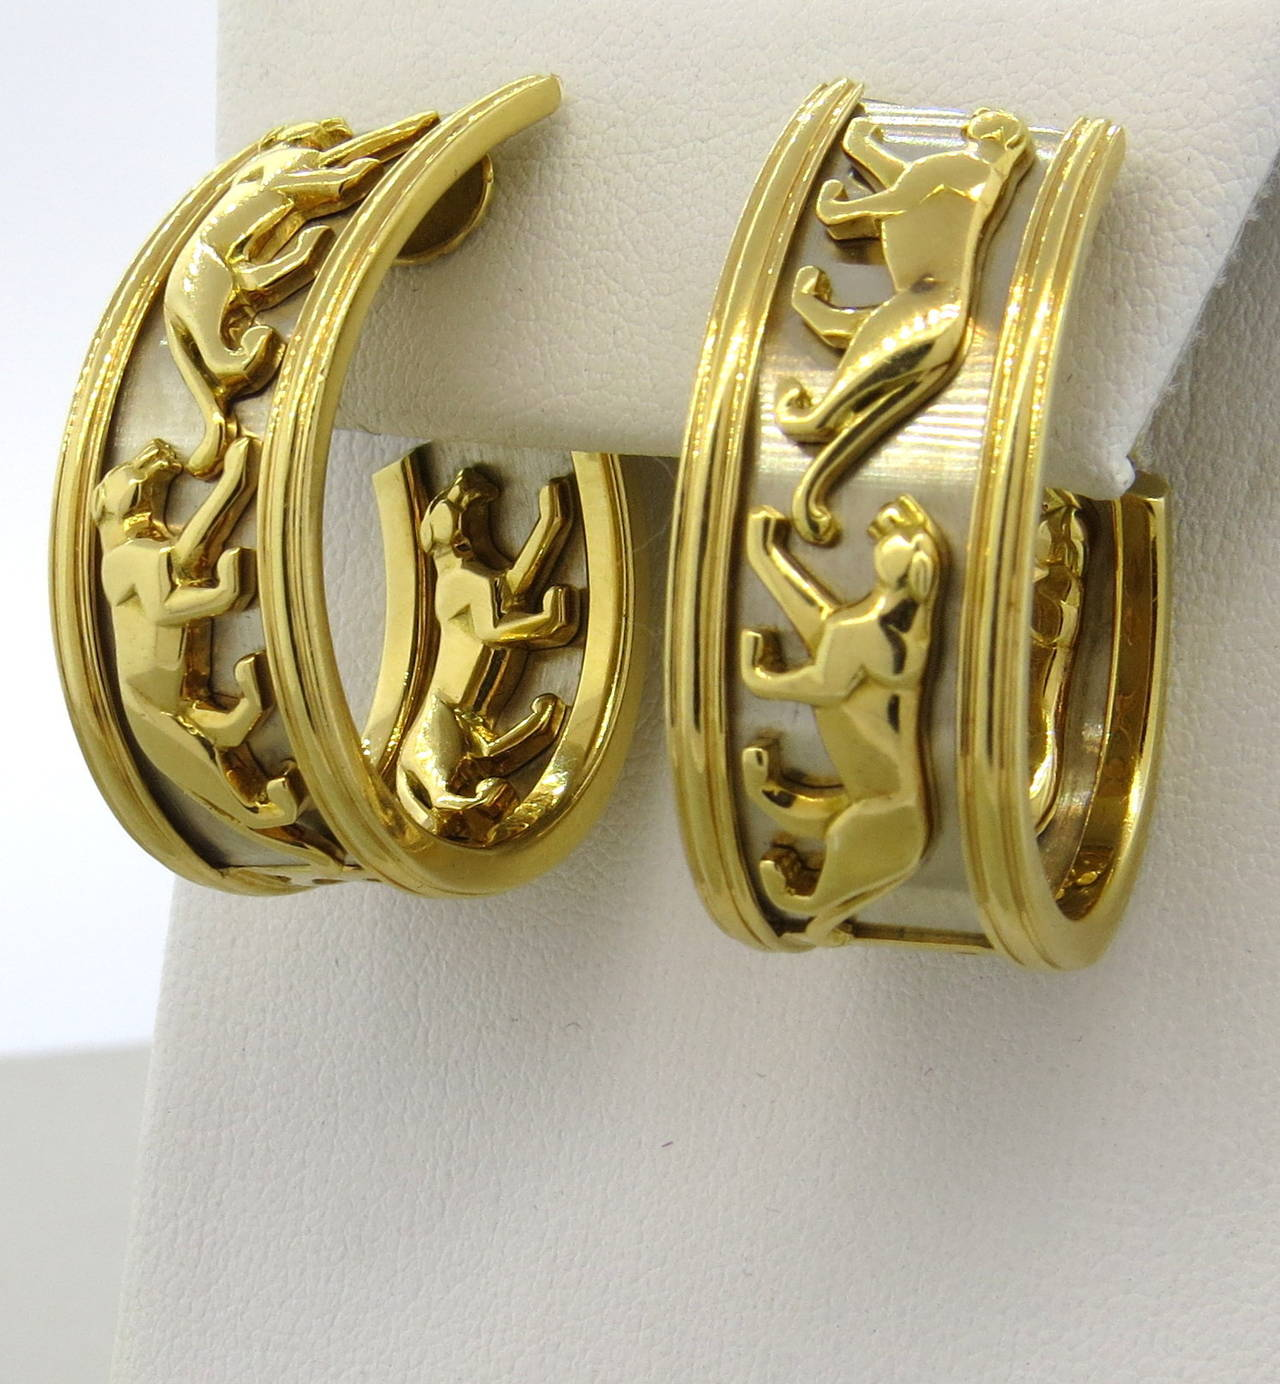 Large Cartier Panthere Gold Hoop Earrings 2